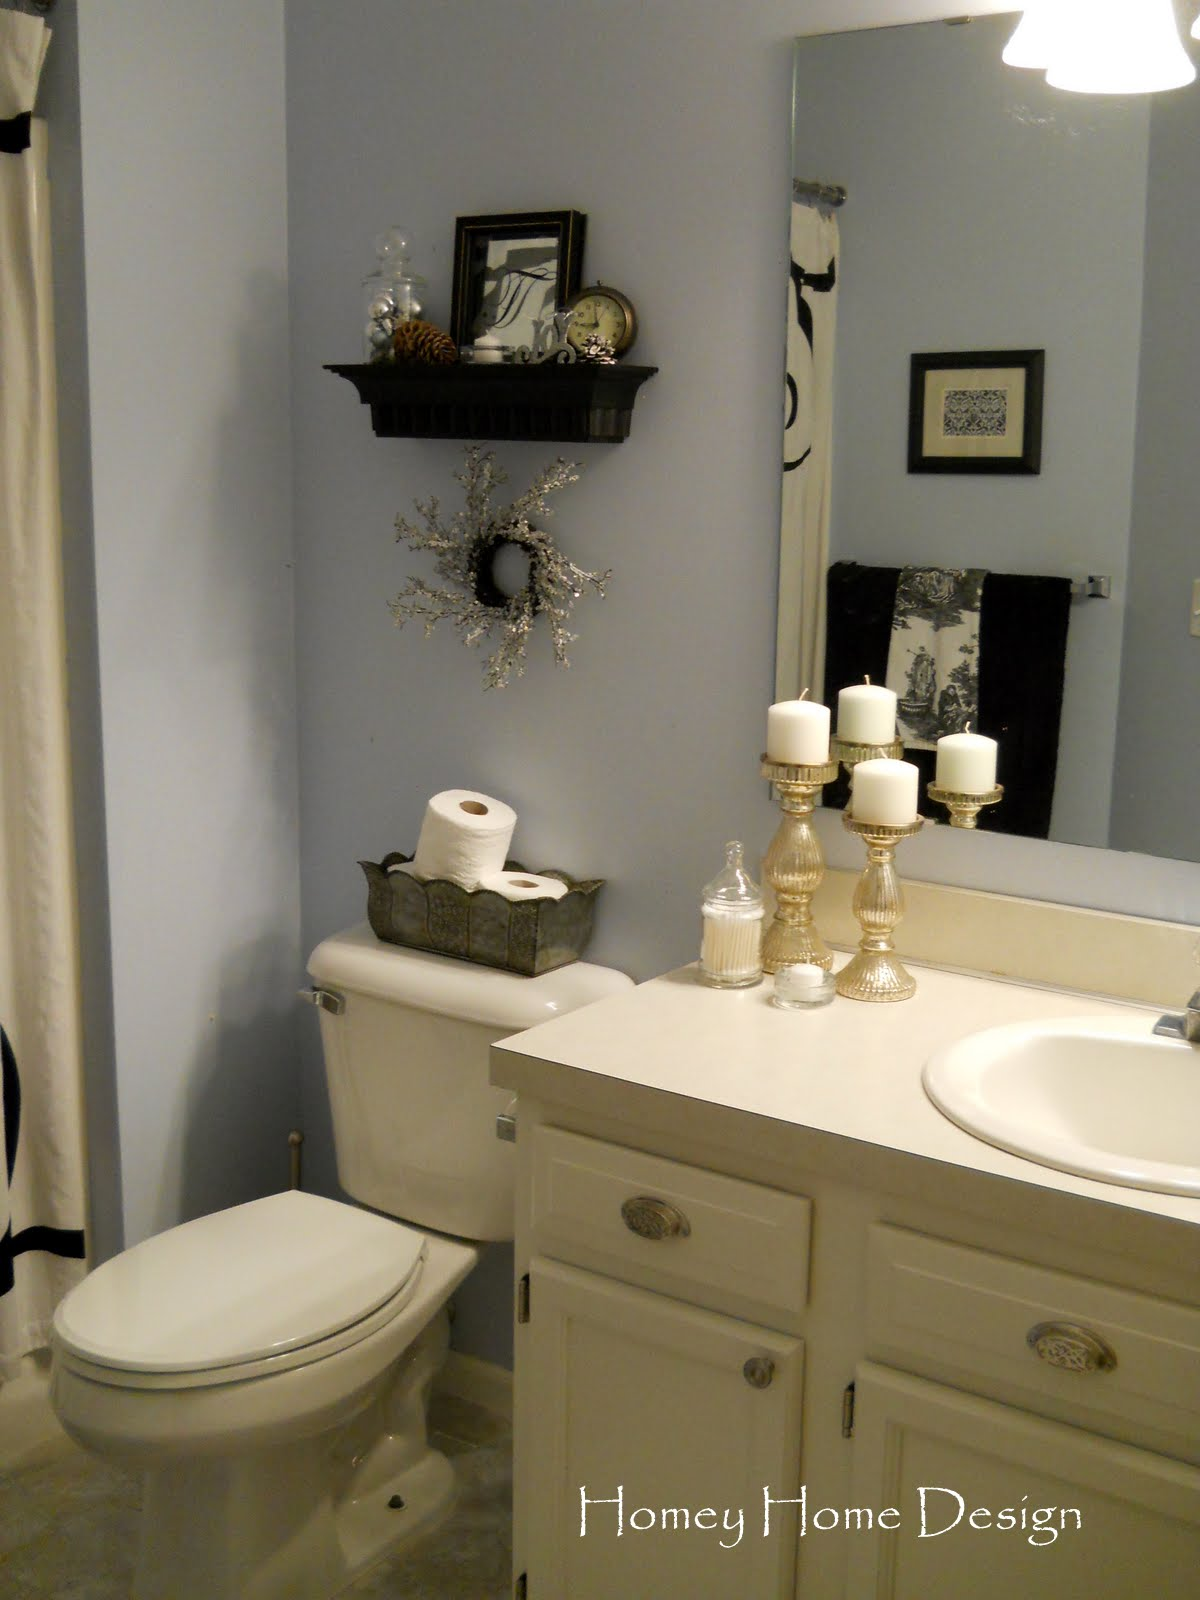 Homey home design christmas in the bathroom for Pics of bathroom decor